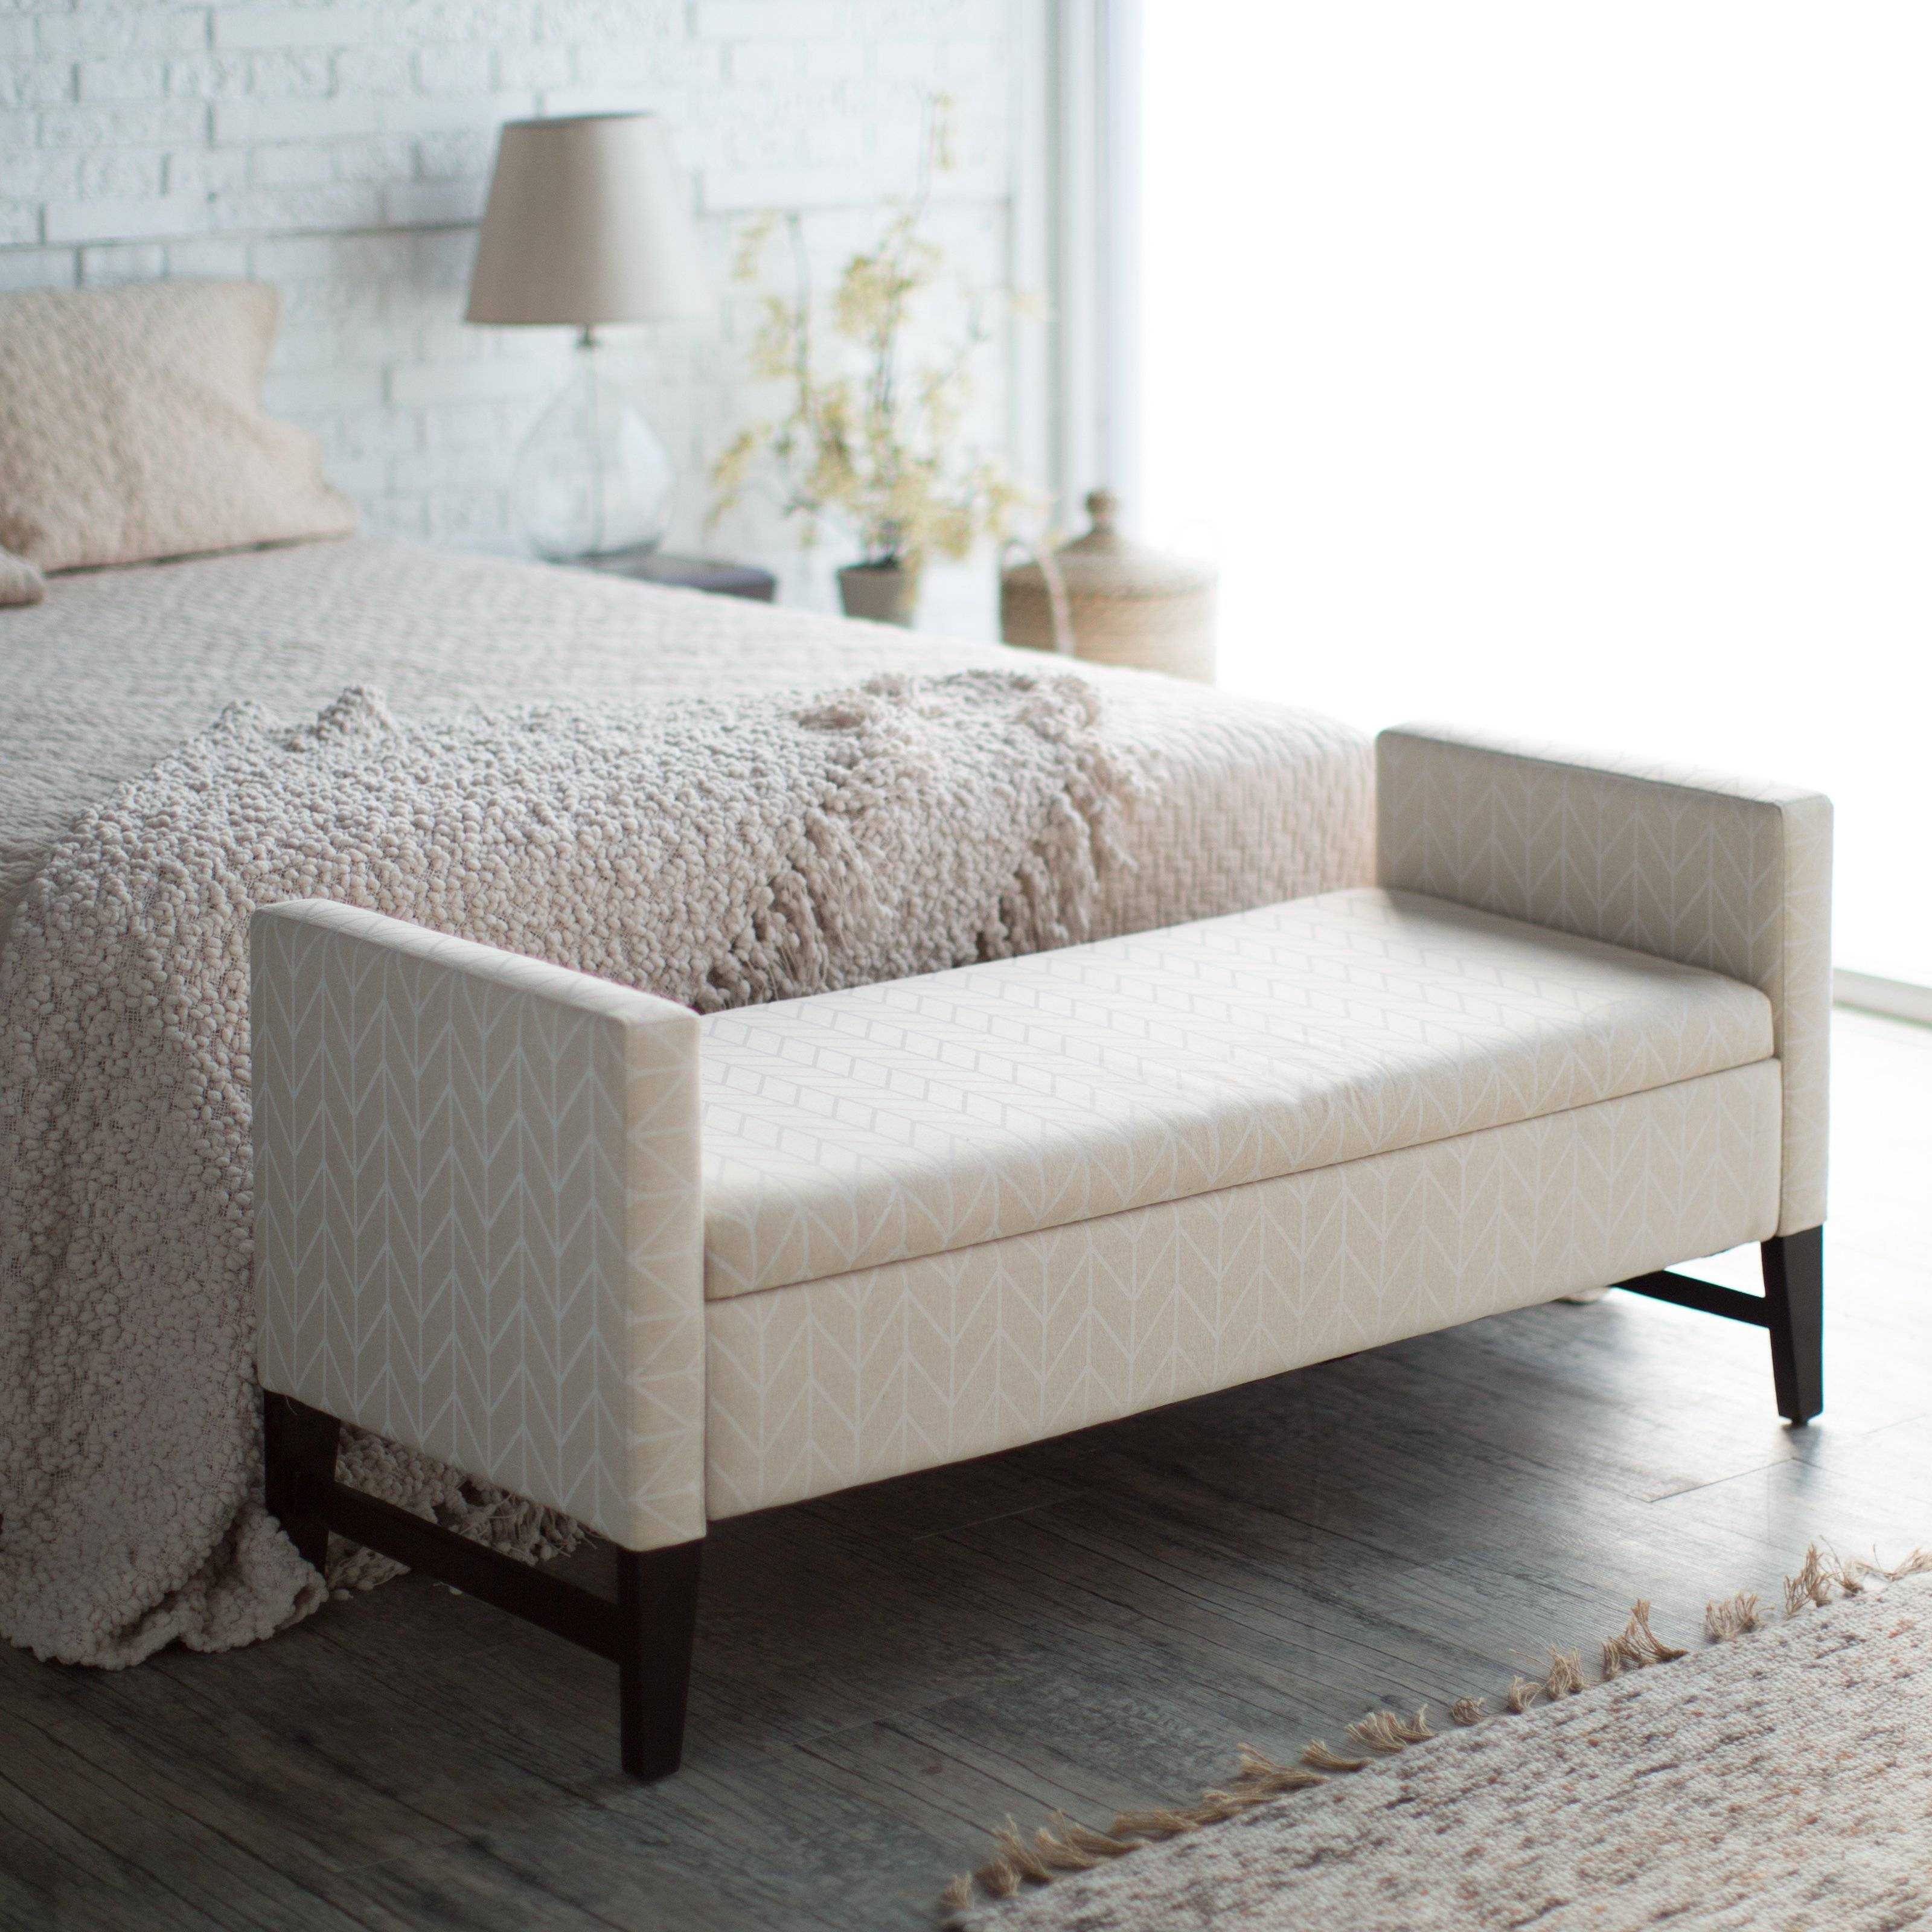 Sitting Pretty: Bedroom Benches - Room Refresh | Hayneedle in Bedroom Bench Sofas (Image 15 of 15)